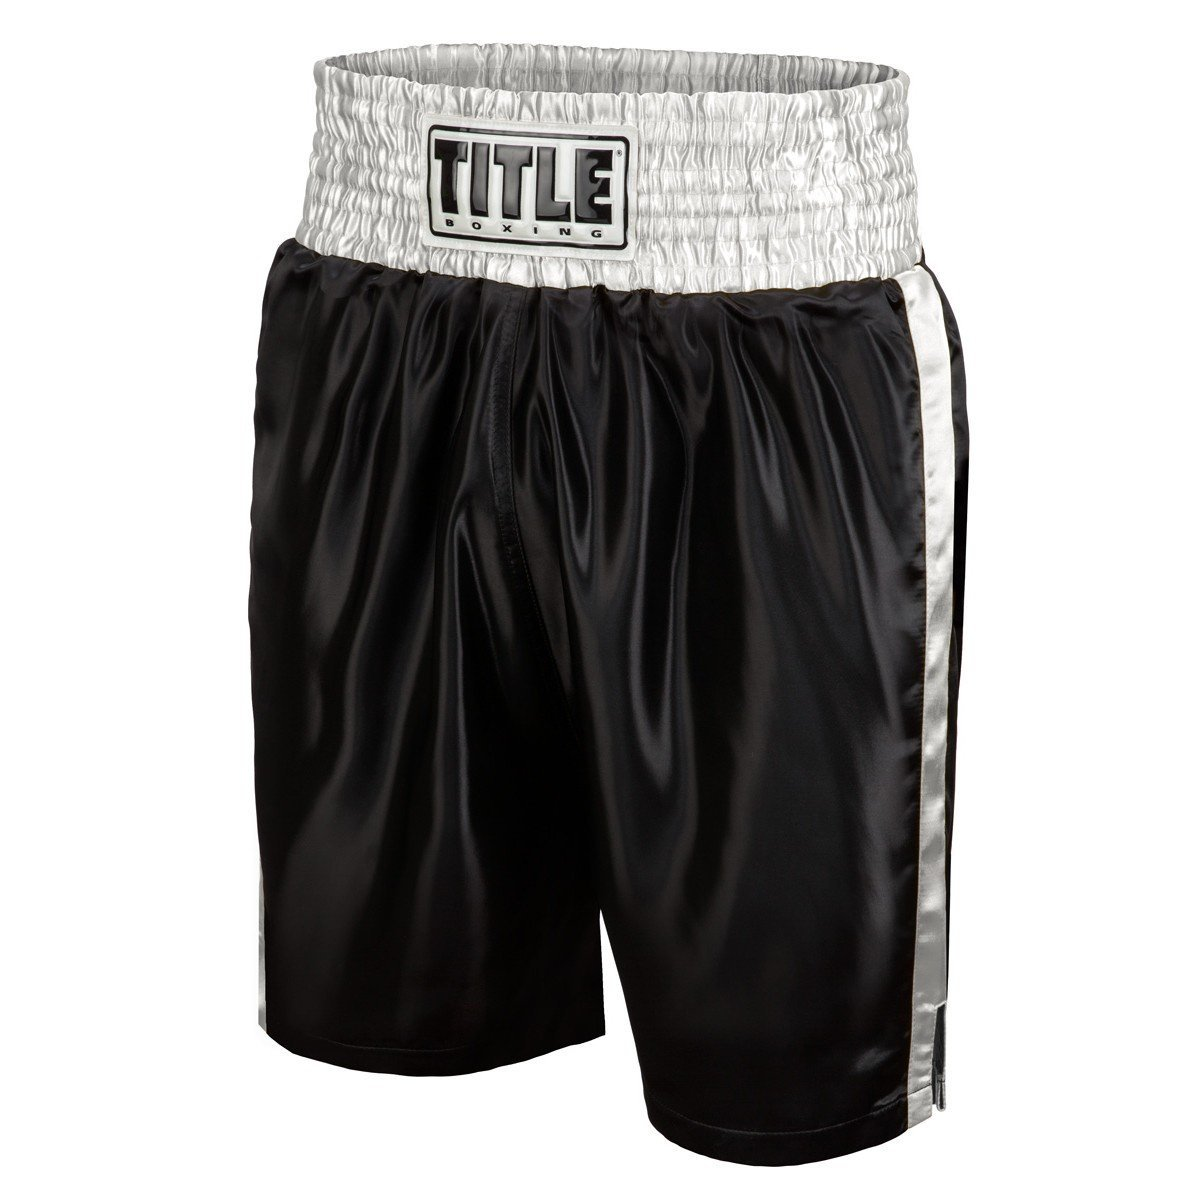 TITLE BOXING SHORTS EDGE BLACK/SILVER - MSM FIGHT SHOPTITLE BOXING